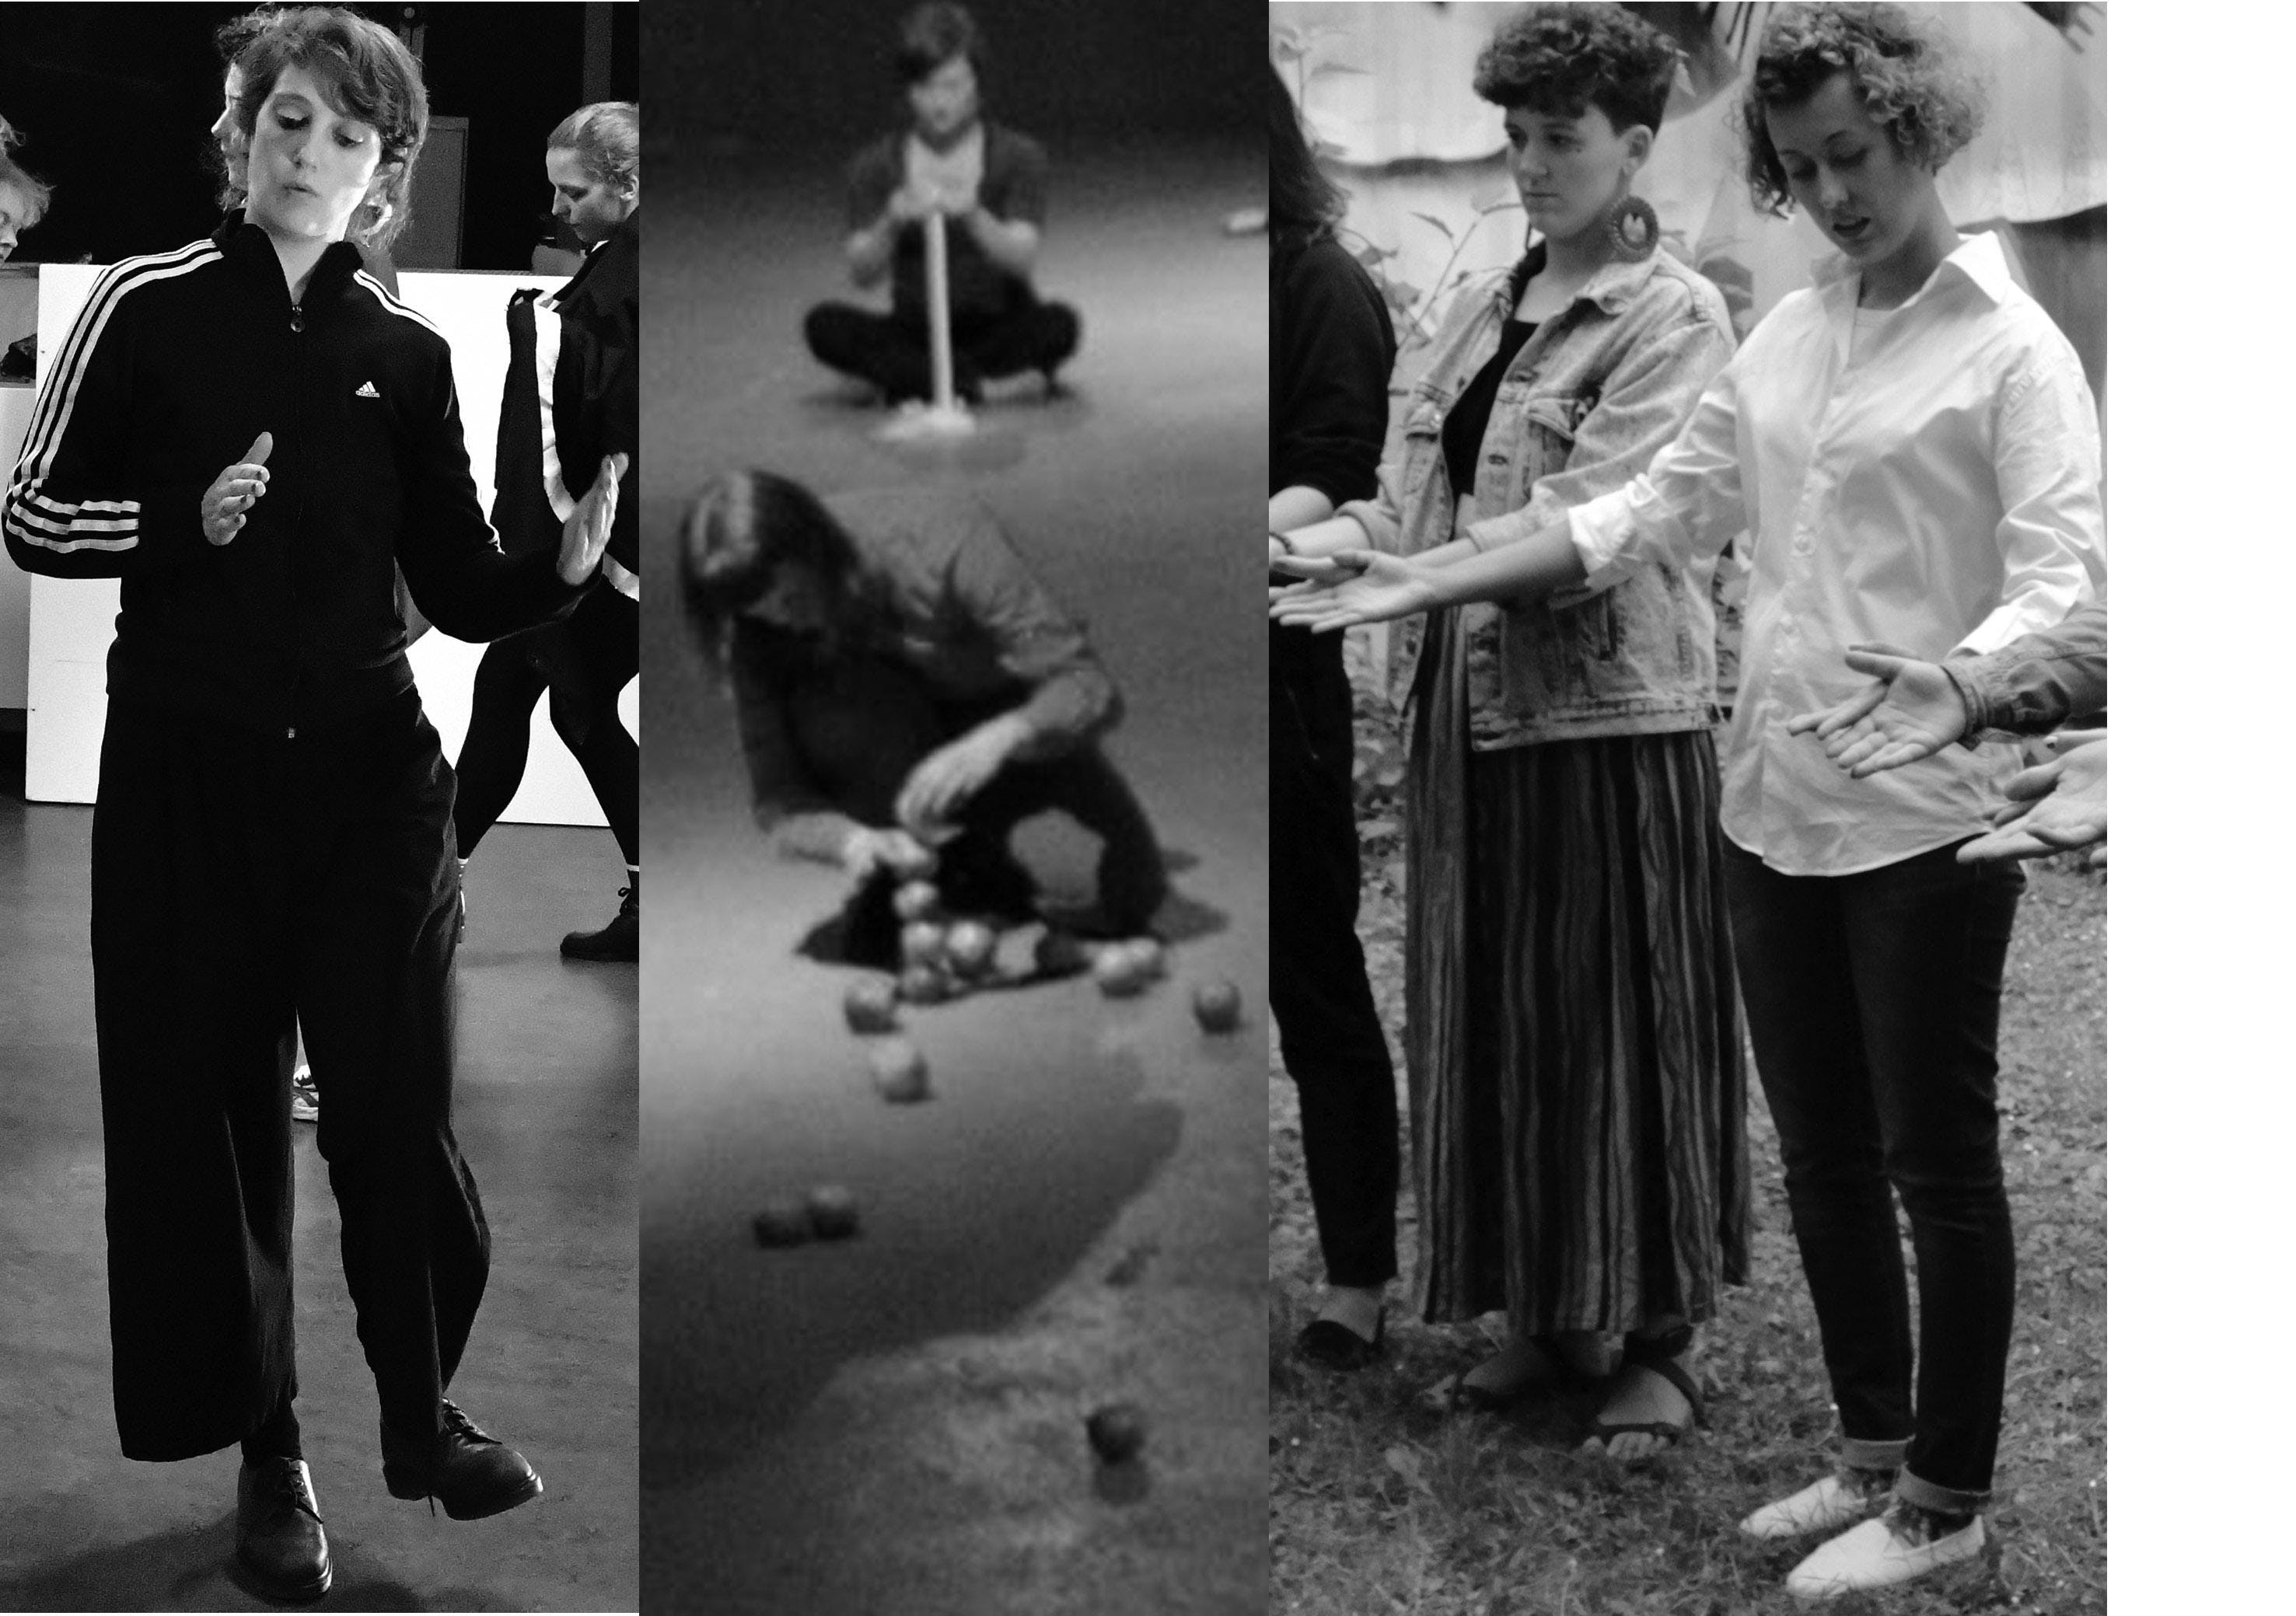 PAWS - Performance Art Workshop Sessions